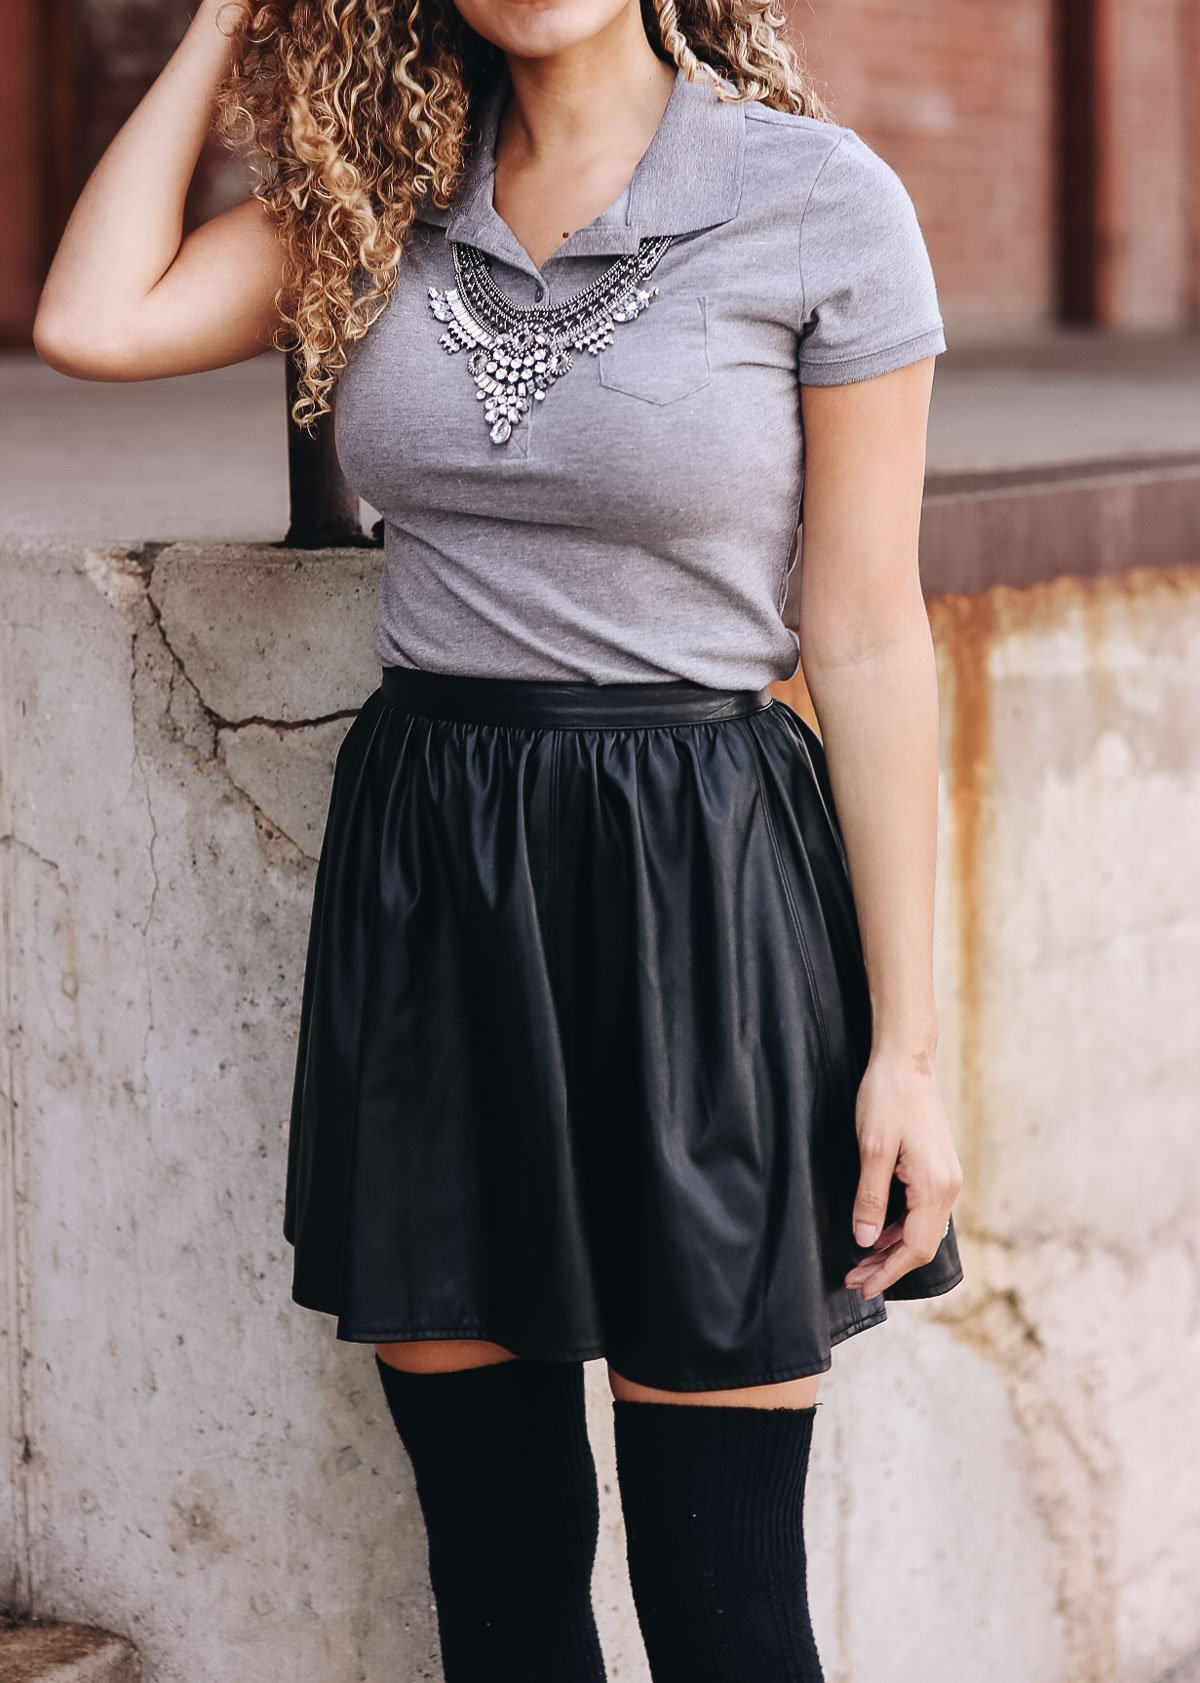 polo shirt outfit